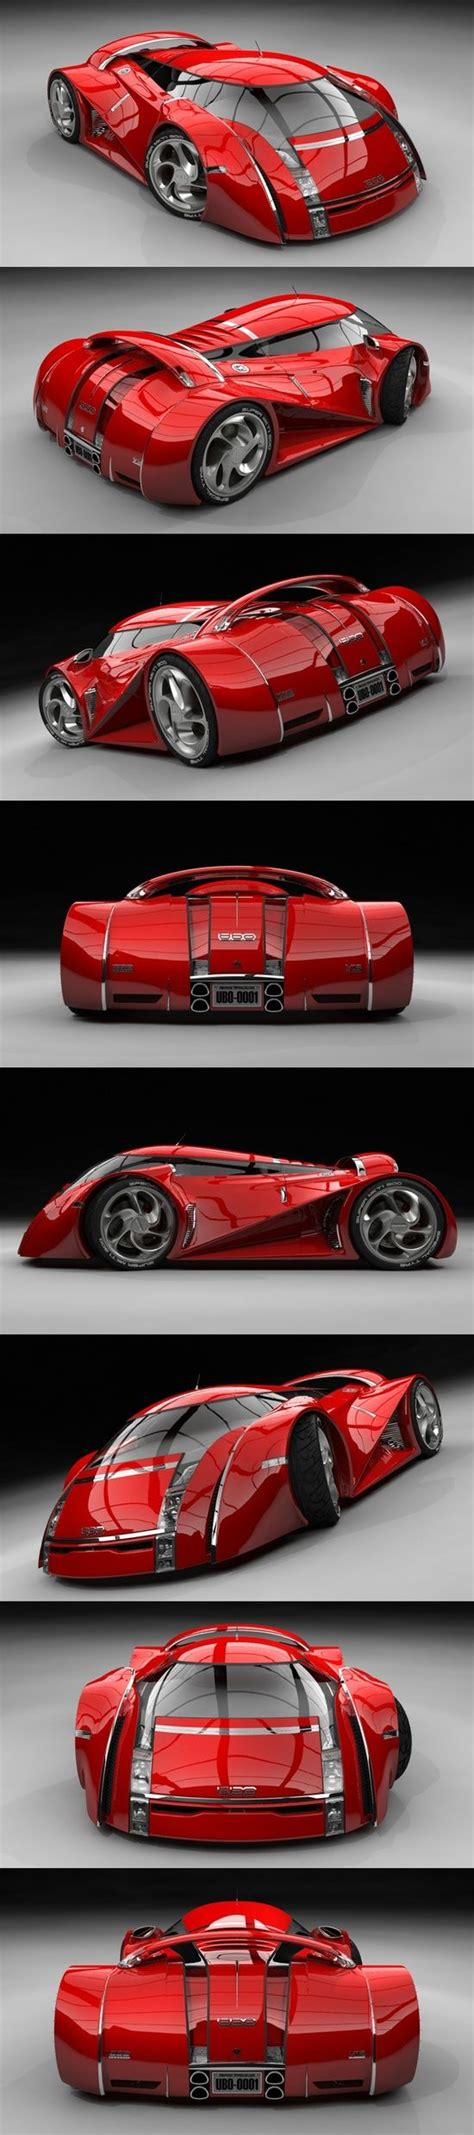 real futuristic cars concept car rouge ubo now th 236 s is a real concept car